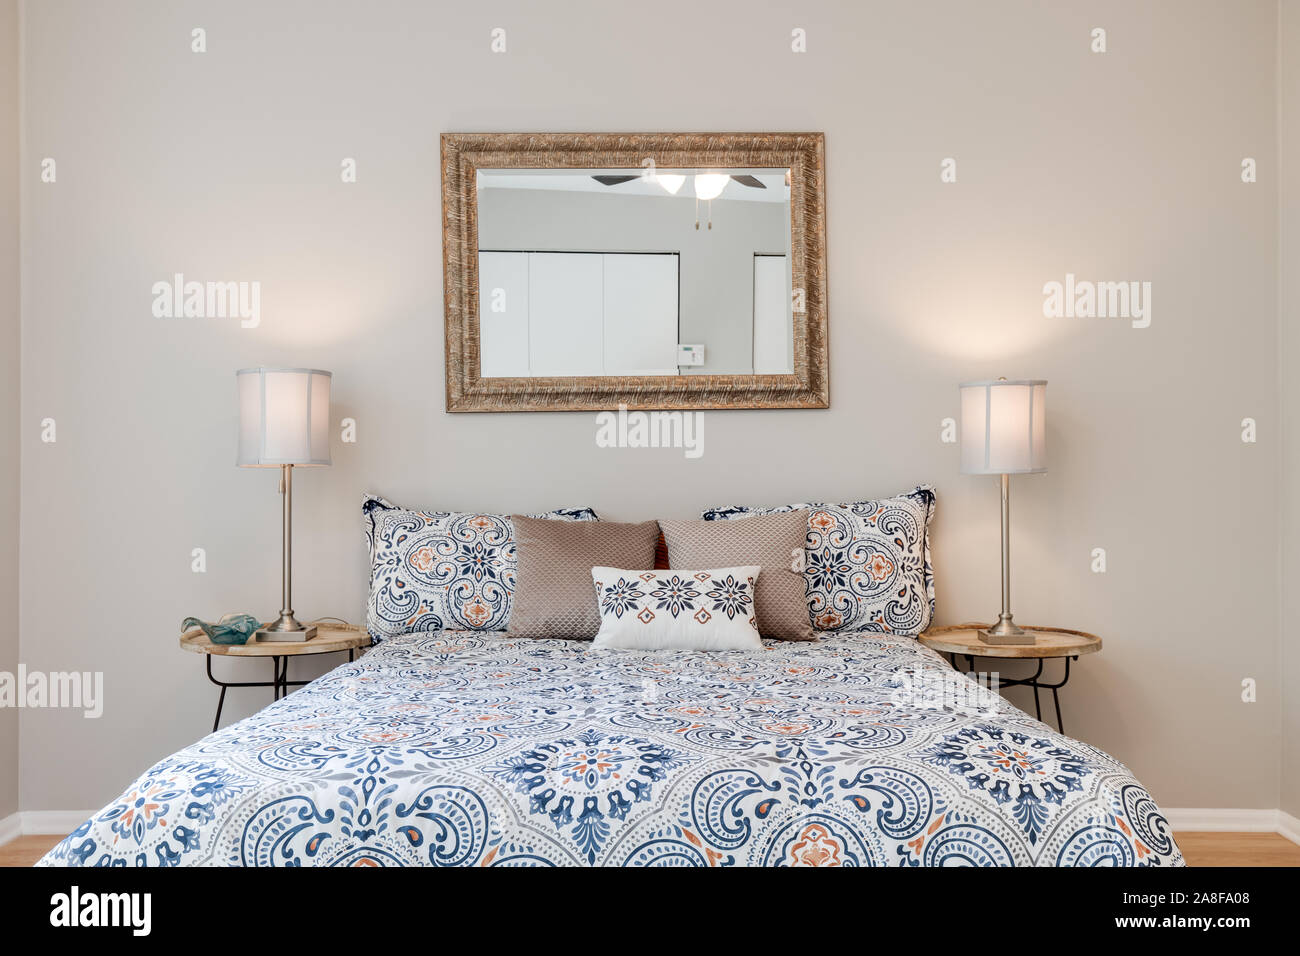 A Bed Centered In The Master Bedroom Of A Residence With Two Lamps On The Nightstand And A Mirror Hangs Above The Bed Stock Photo Alamy